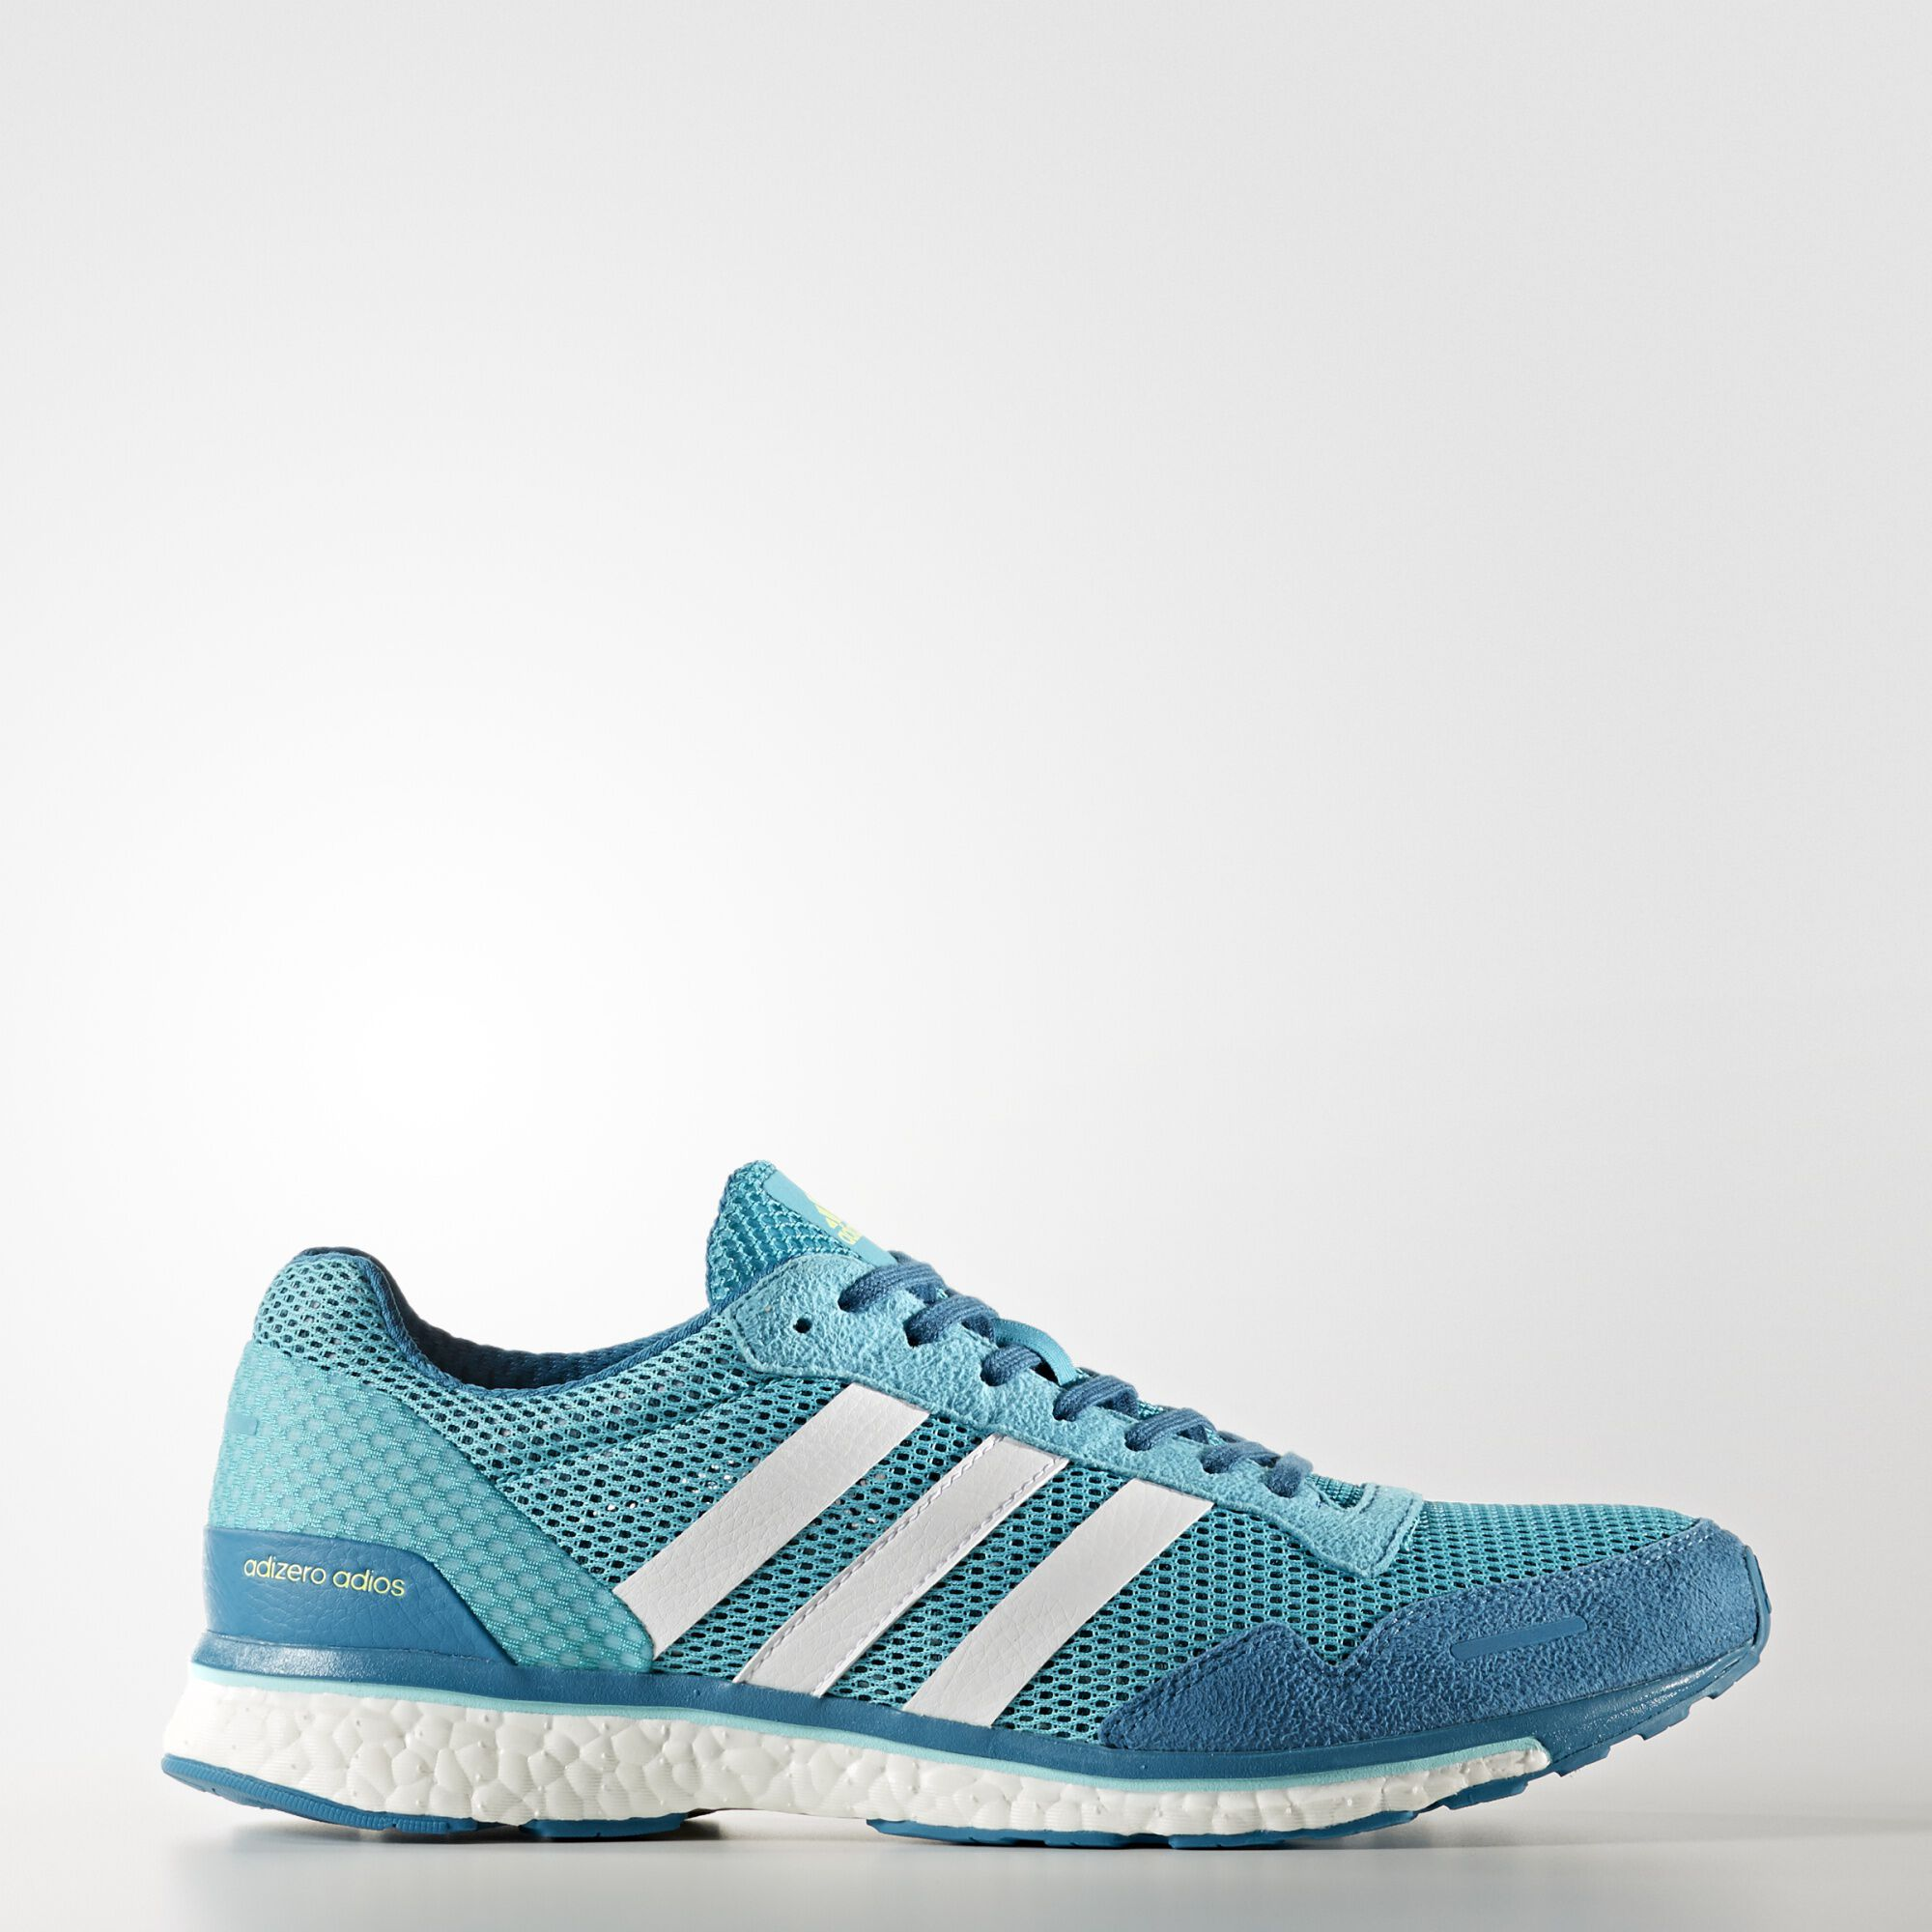 View More Like This adidas Running Energy Boost 3 Zappos